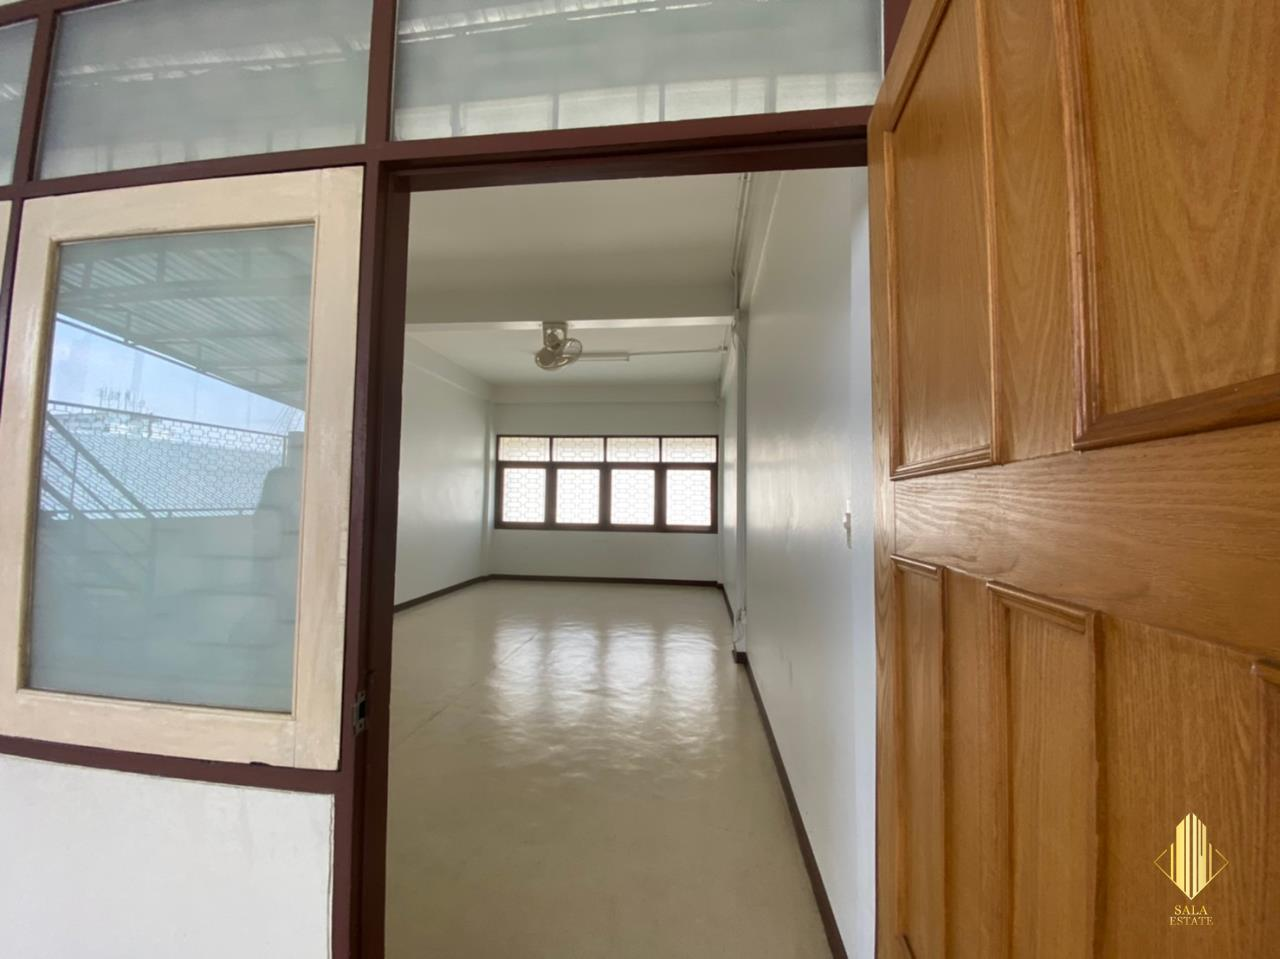 SALA ESTATE Agency's COMMERCIAL BUILDING OFFICE FOR SALE / RENT - SUSAWAD 9, 1400 SQM 3 FLOORS 10 ROOMS 15